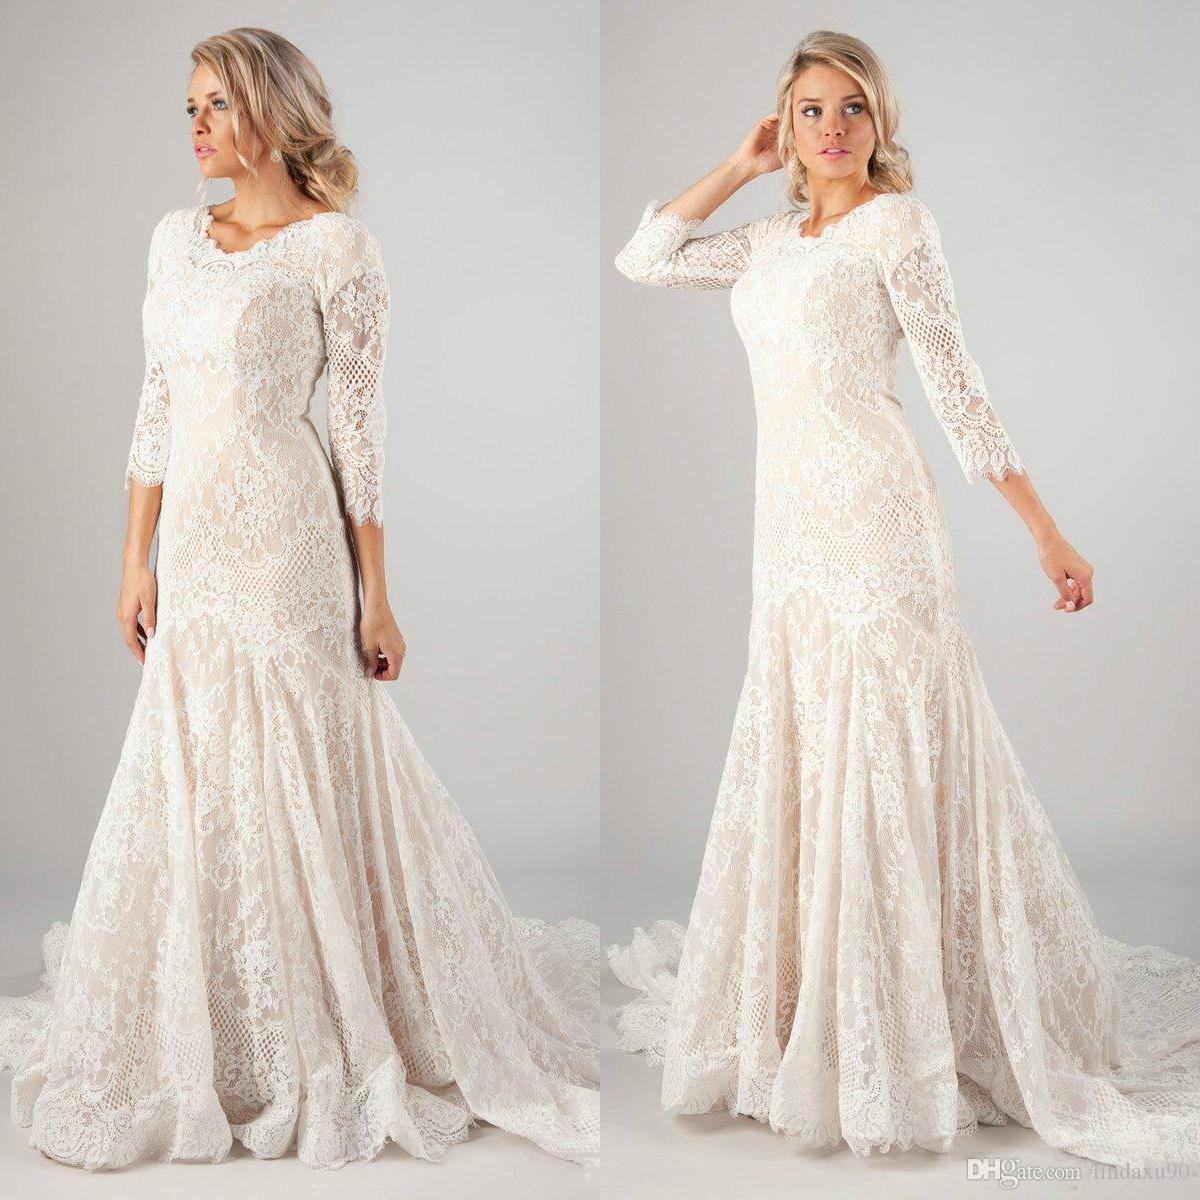 c149fb627fc7 2019 New Mermaid Lace Modest Wedding Dresses With 3/4 Long Sleeves Vintage  LDS Muslim Bridal Gowns Sweep Train Buttons Back Wedding Dresses Mermaid  Style ...